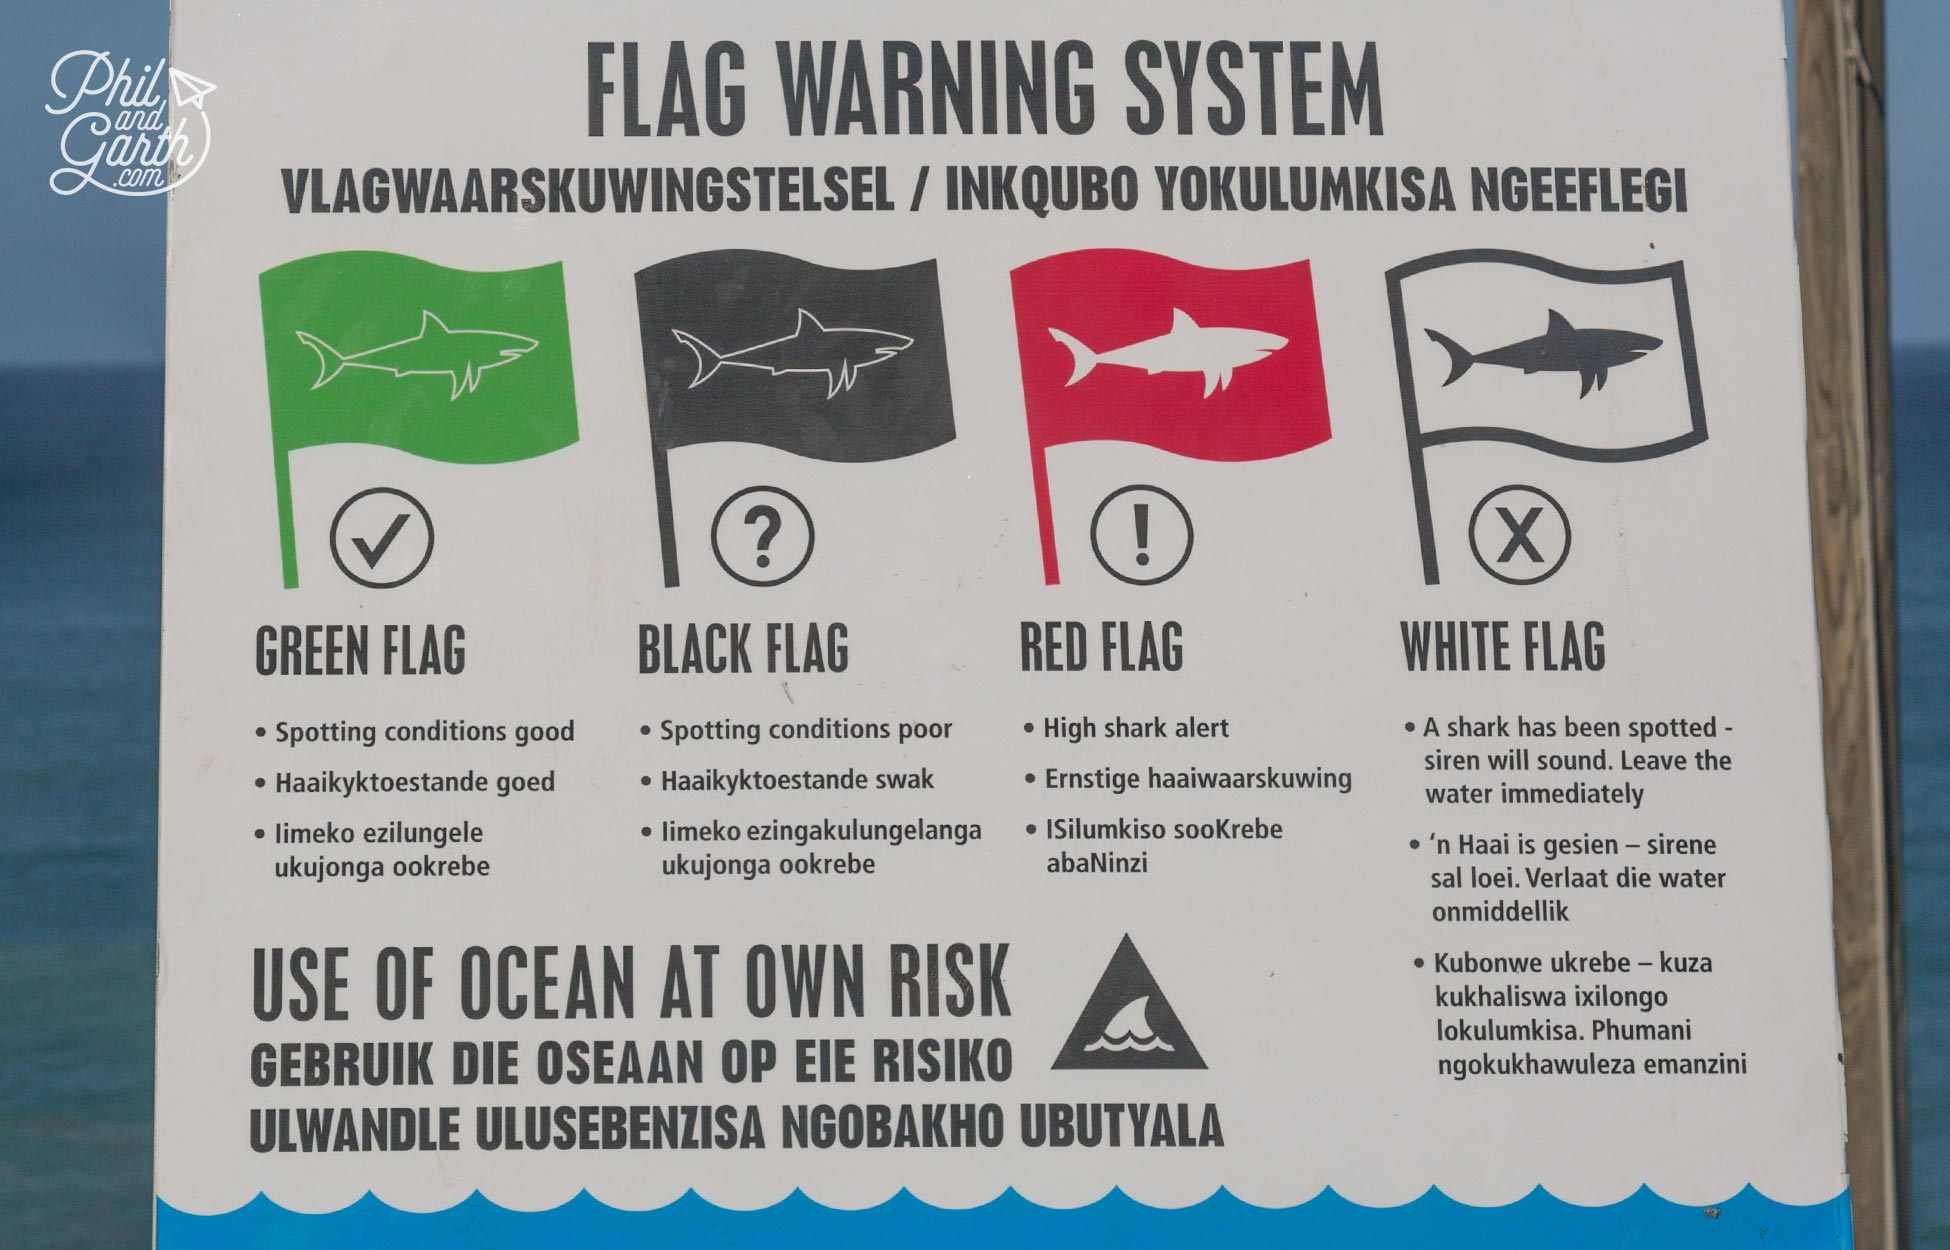 South Africa's Shark flag warning system